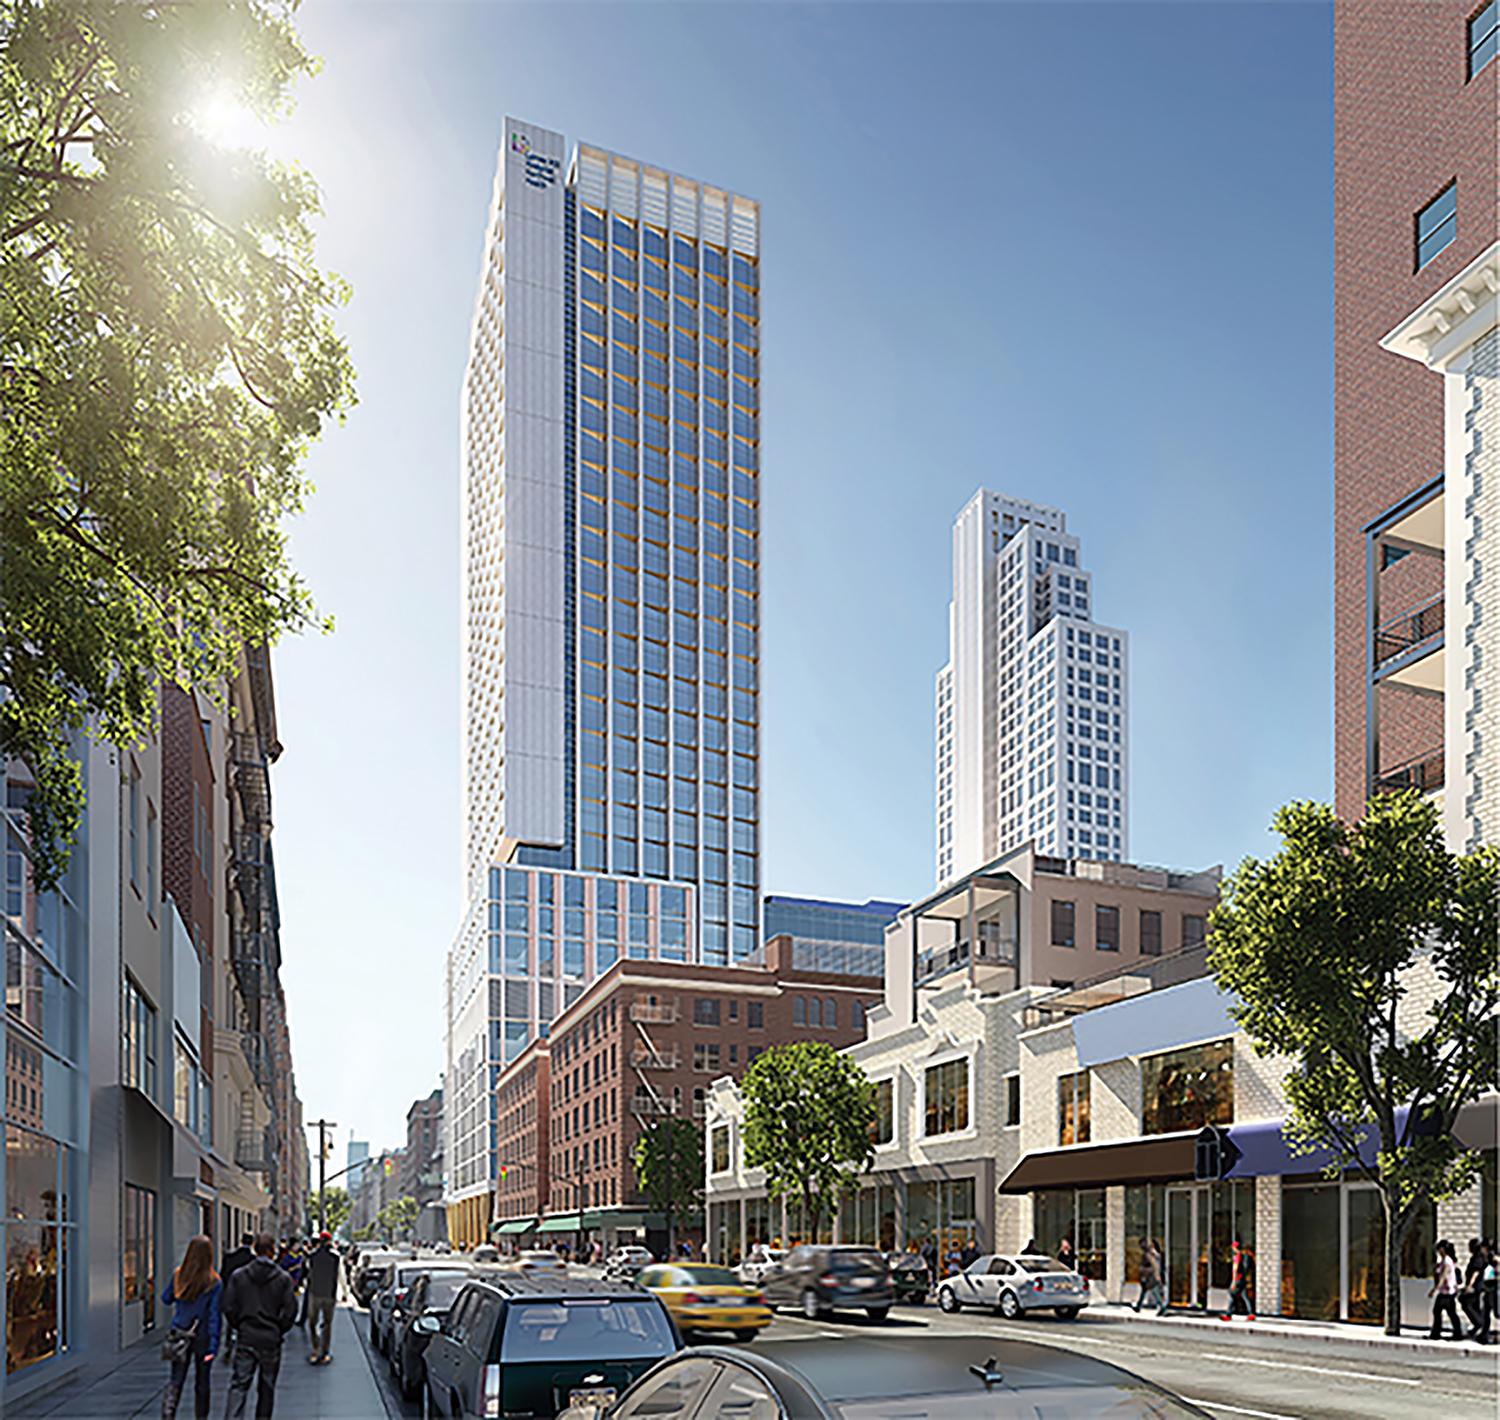 Lenox Hill hospital expansion, rendering by Ennead Architects